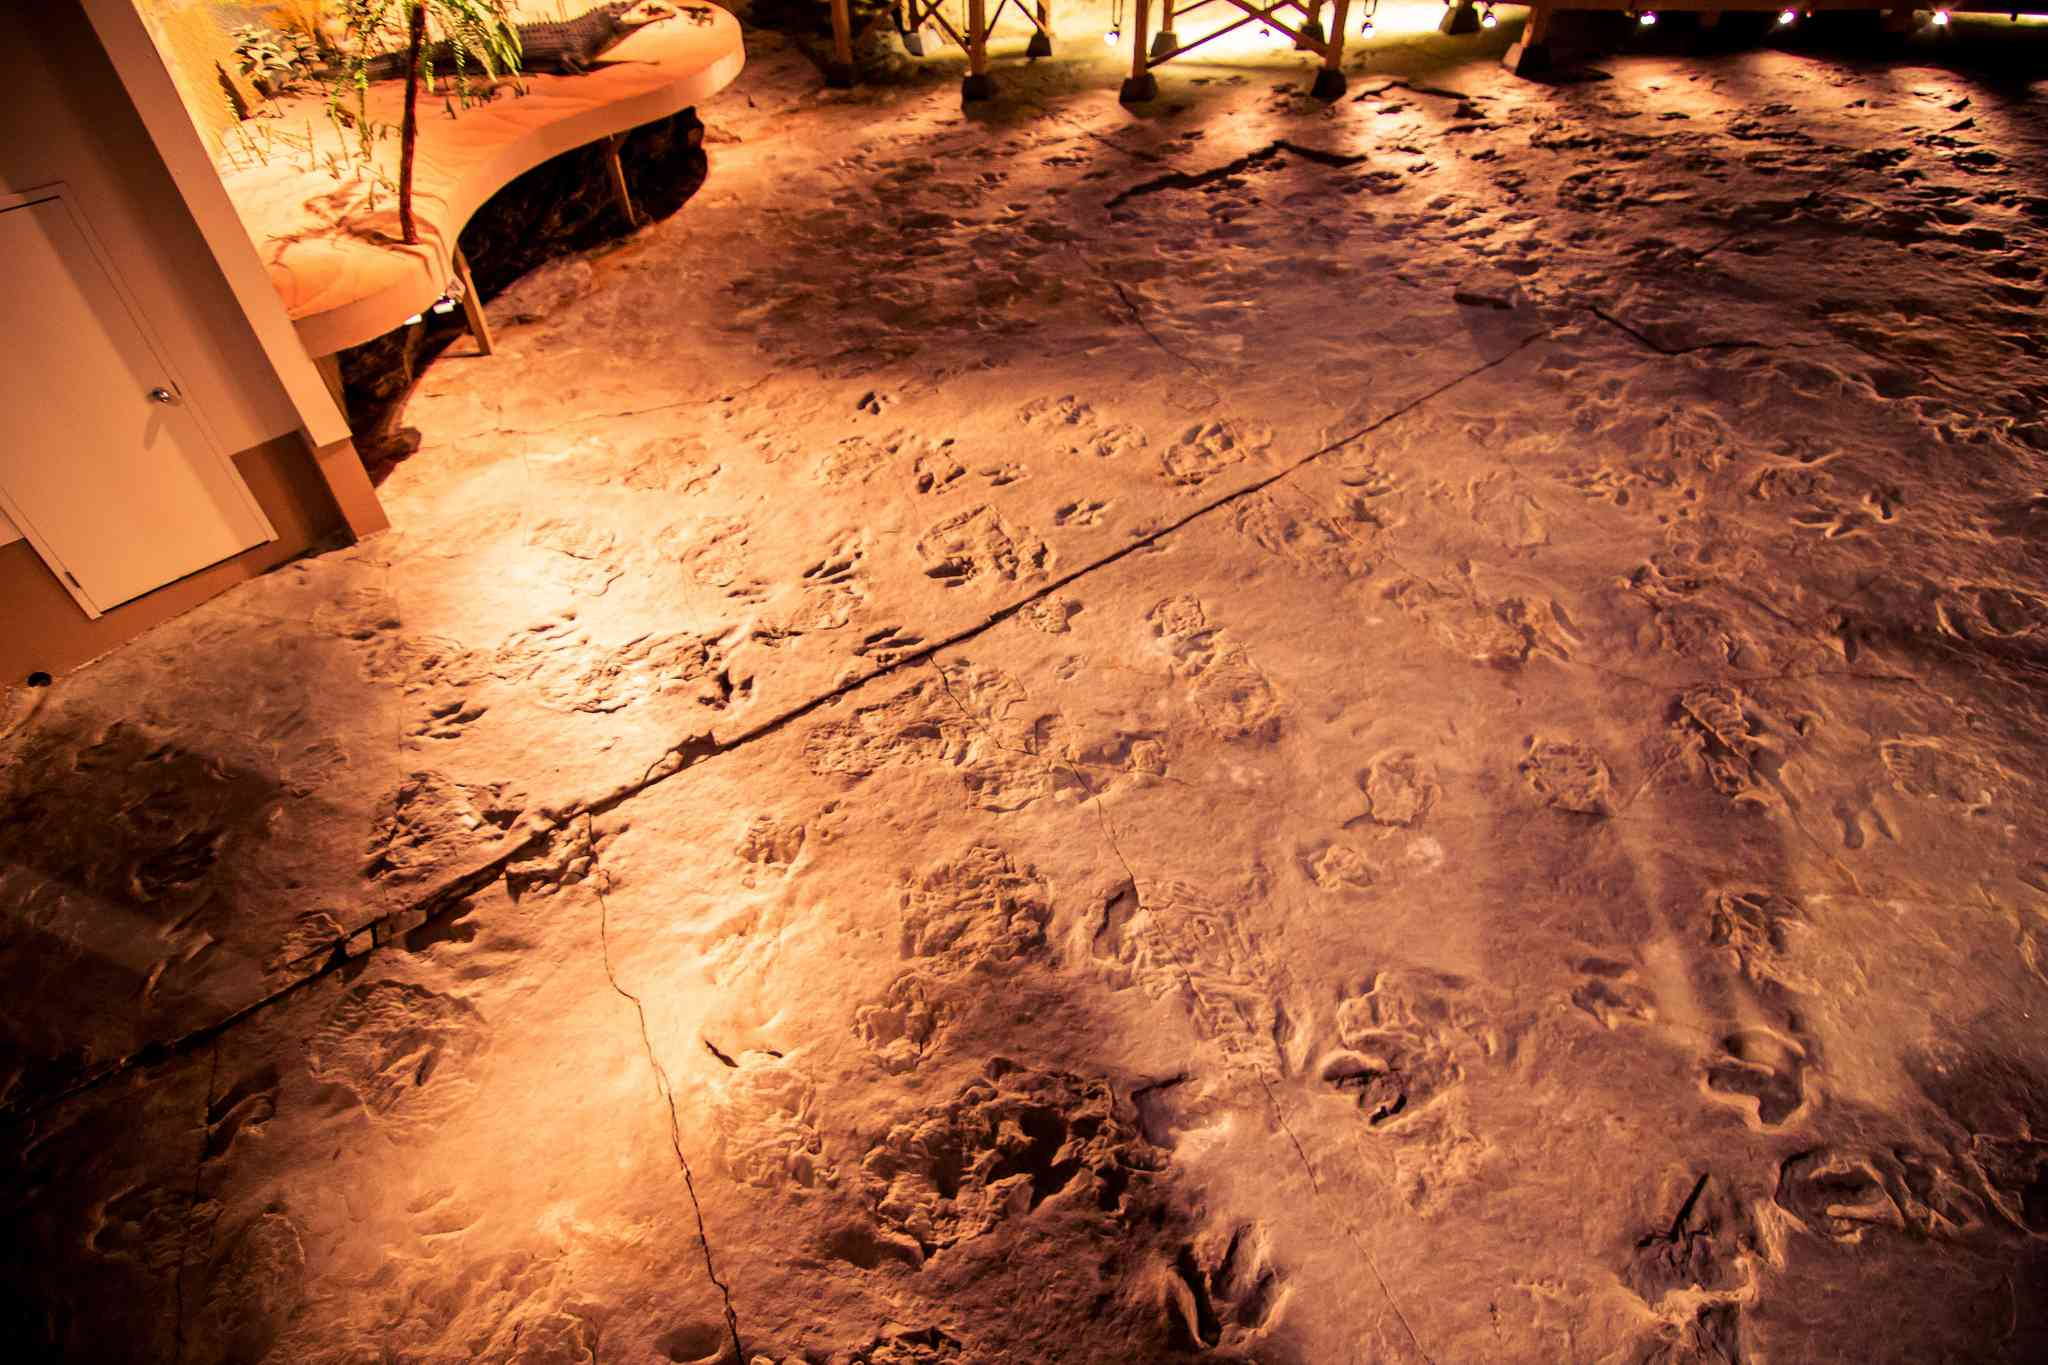 The ground in a museum exhibit covered with dinosaur tracks